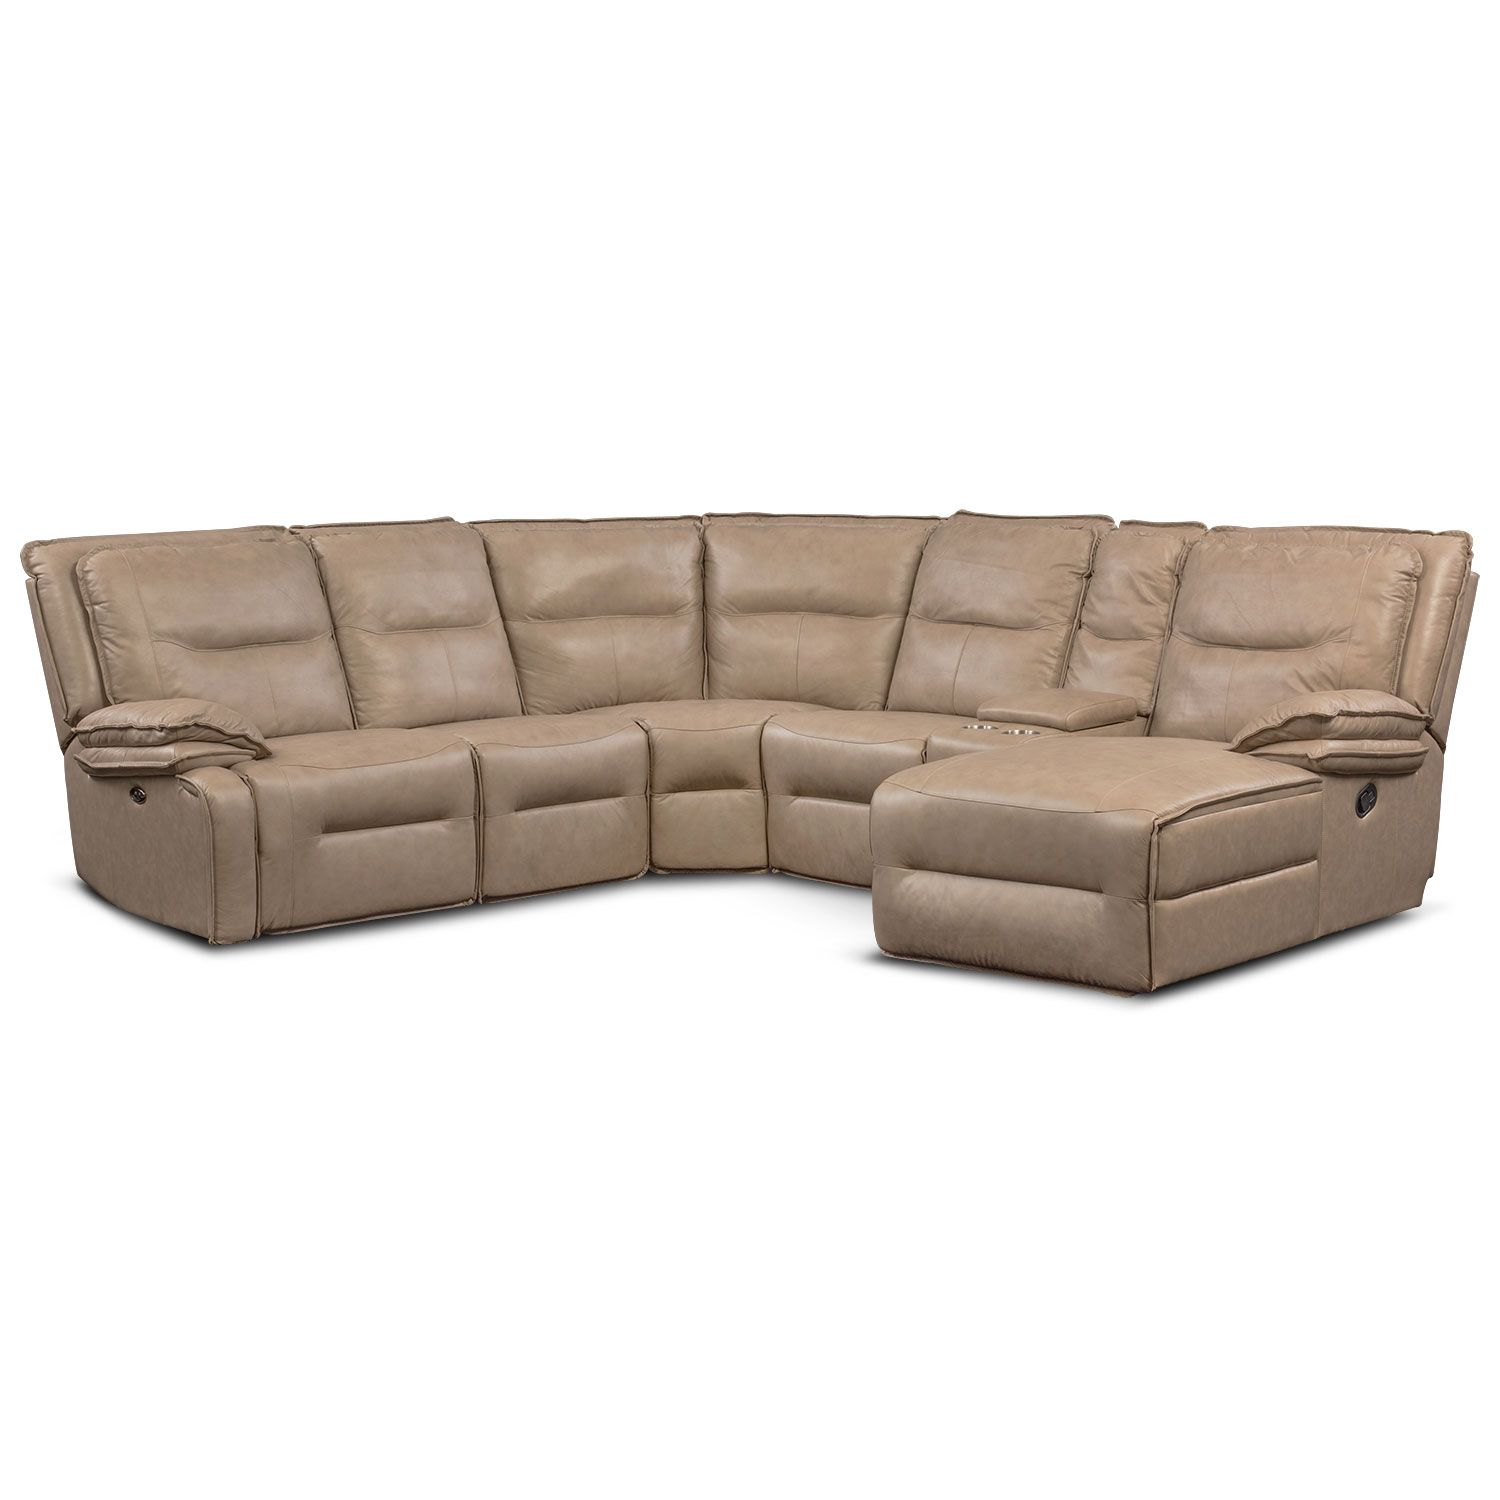 Nikki 6 Piece Power Reclining Sectional With 2 Recliners And Right Facing Chaise Taupe Value Ci Reclining Sectional Sectional Sofa With Recliner Sofa Store